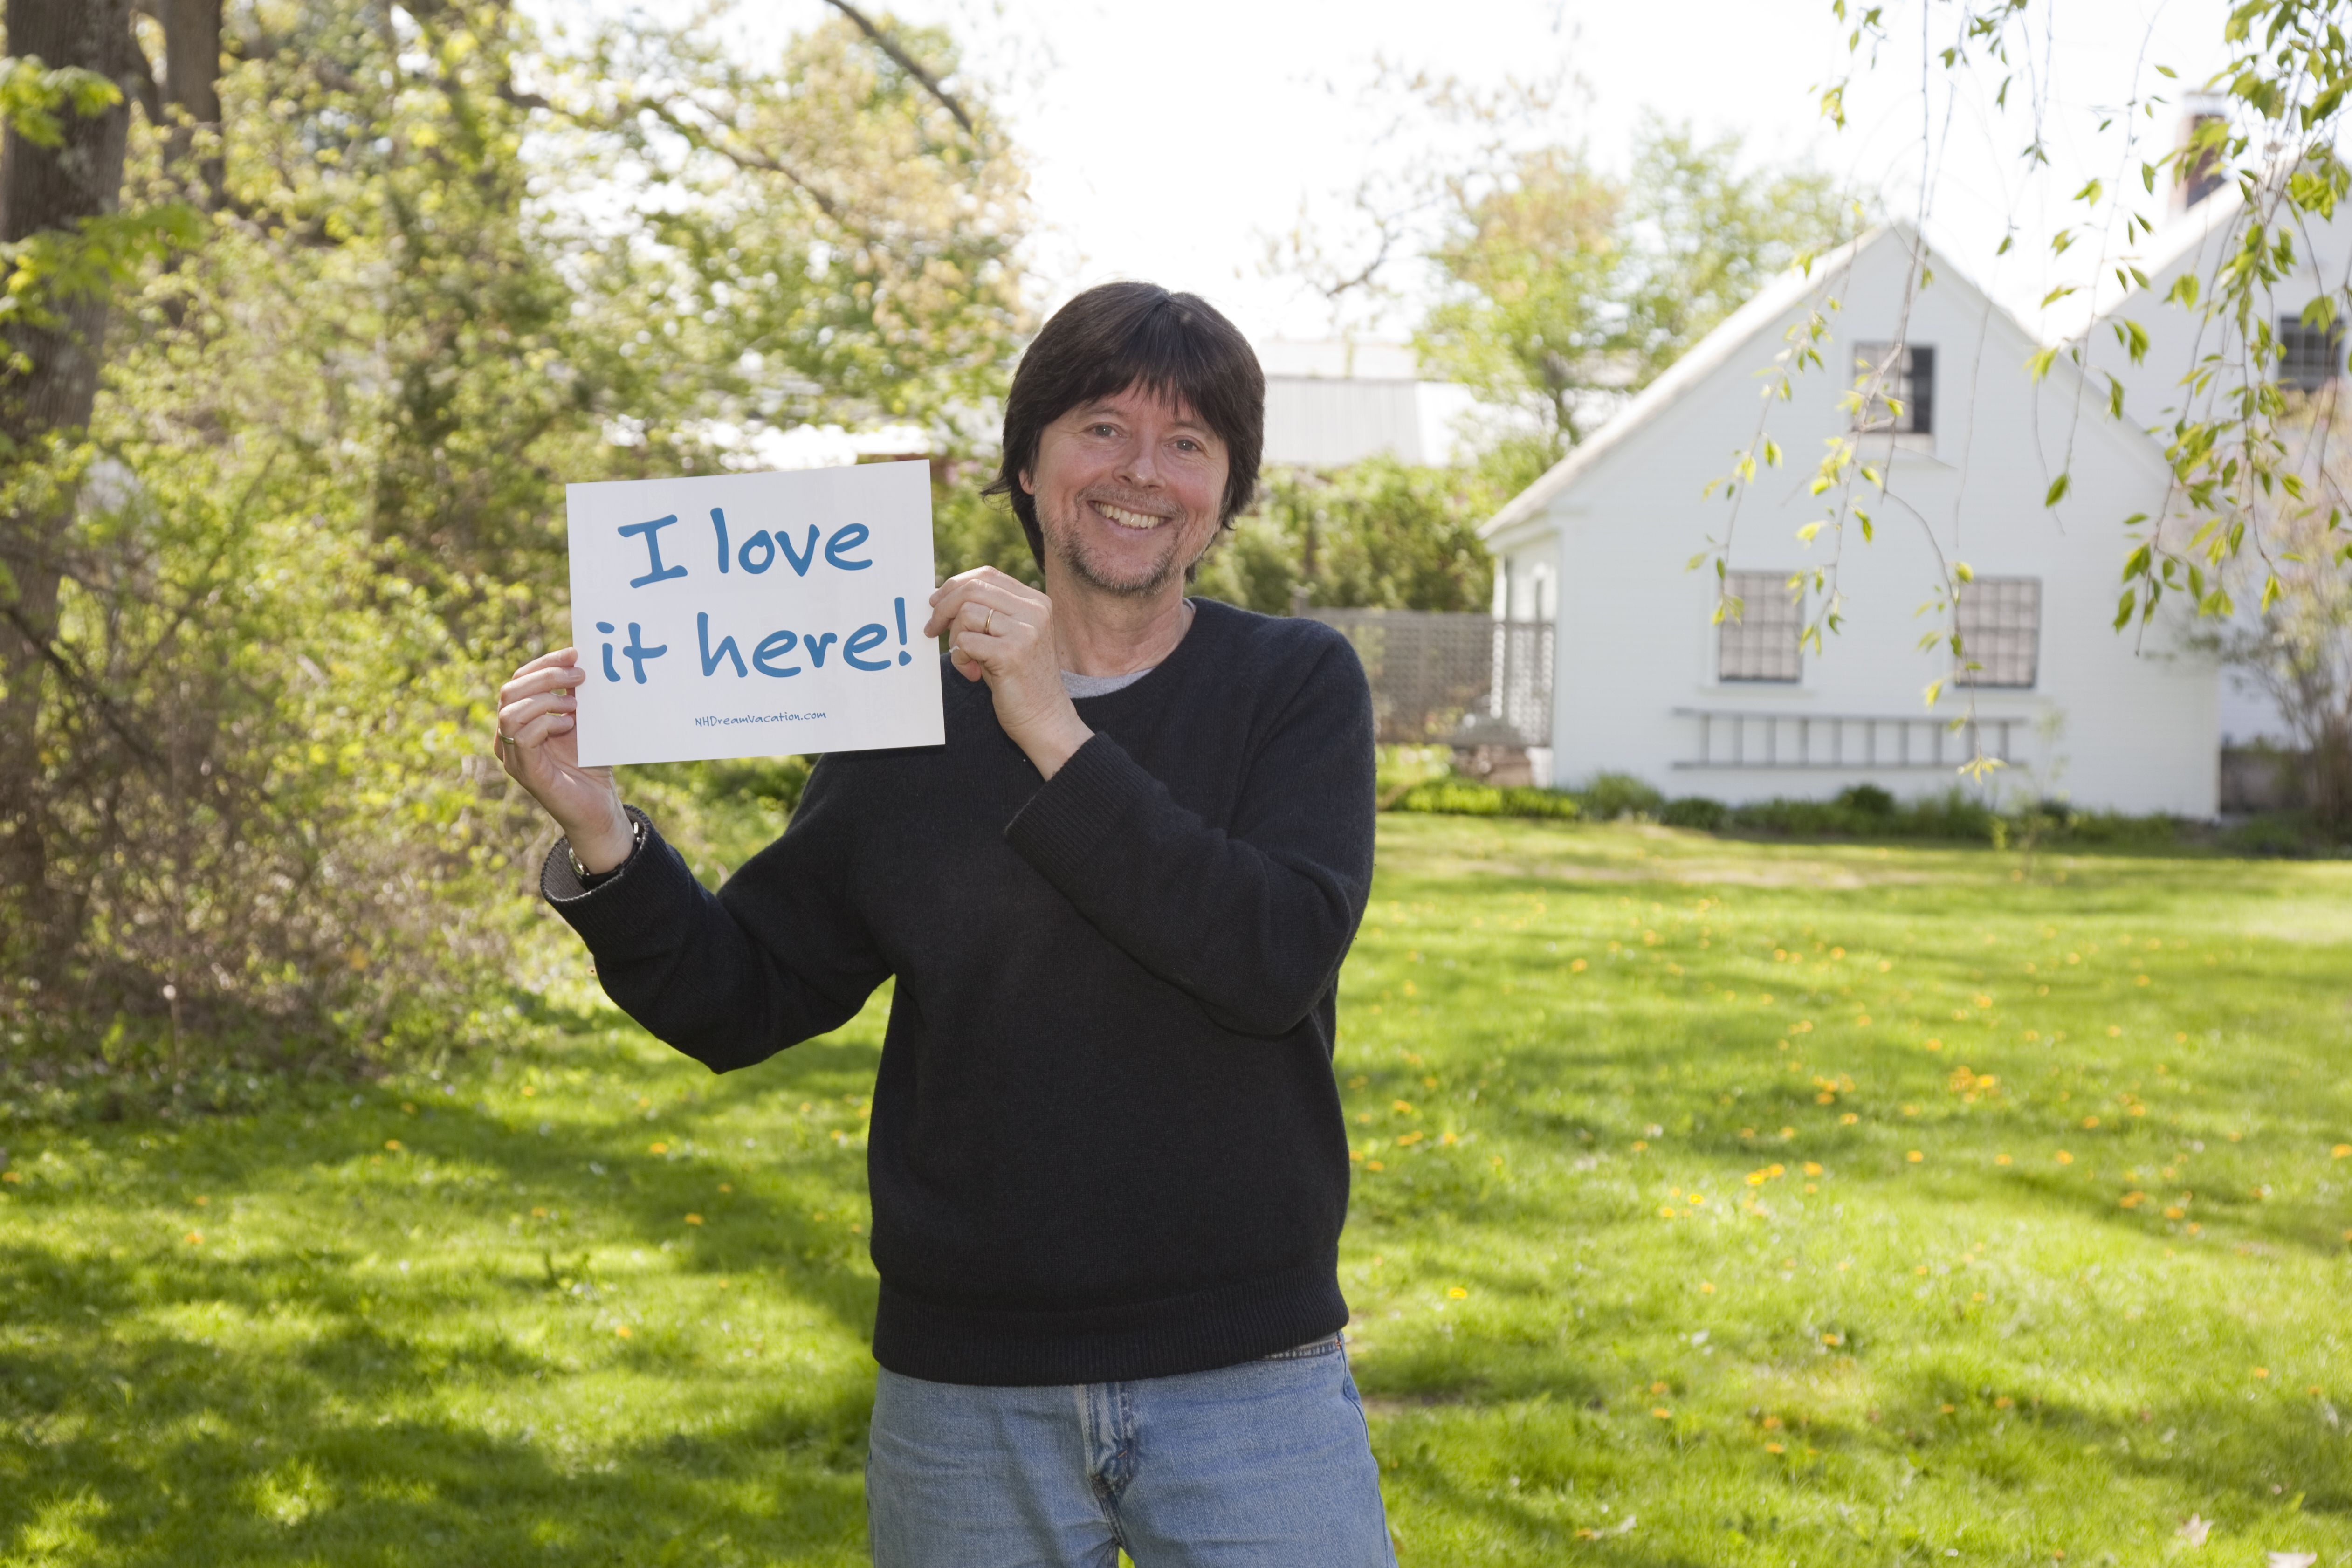 Speaking of documentary filmmaker Ken Burns, he owns a home and restaurant in Walpole.